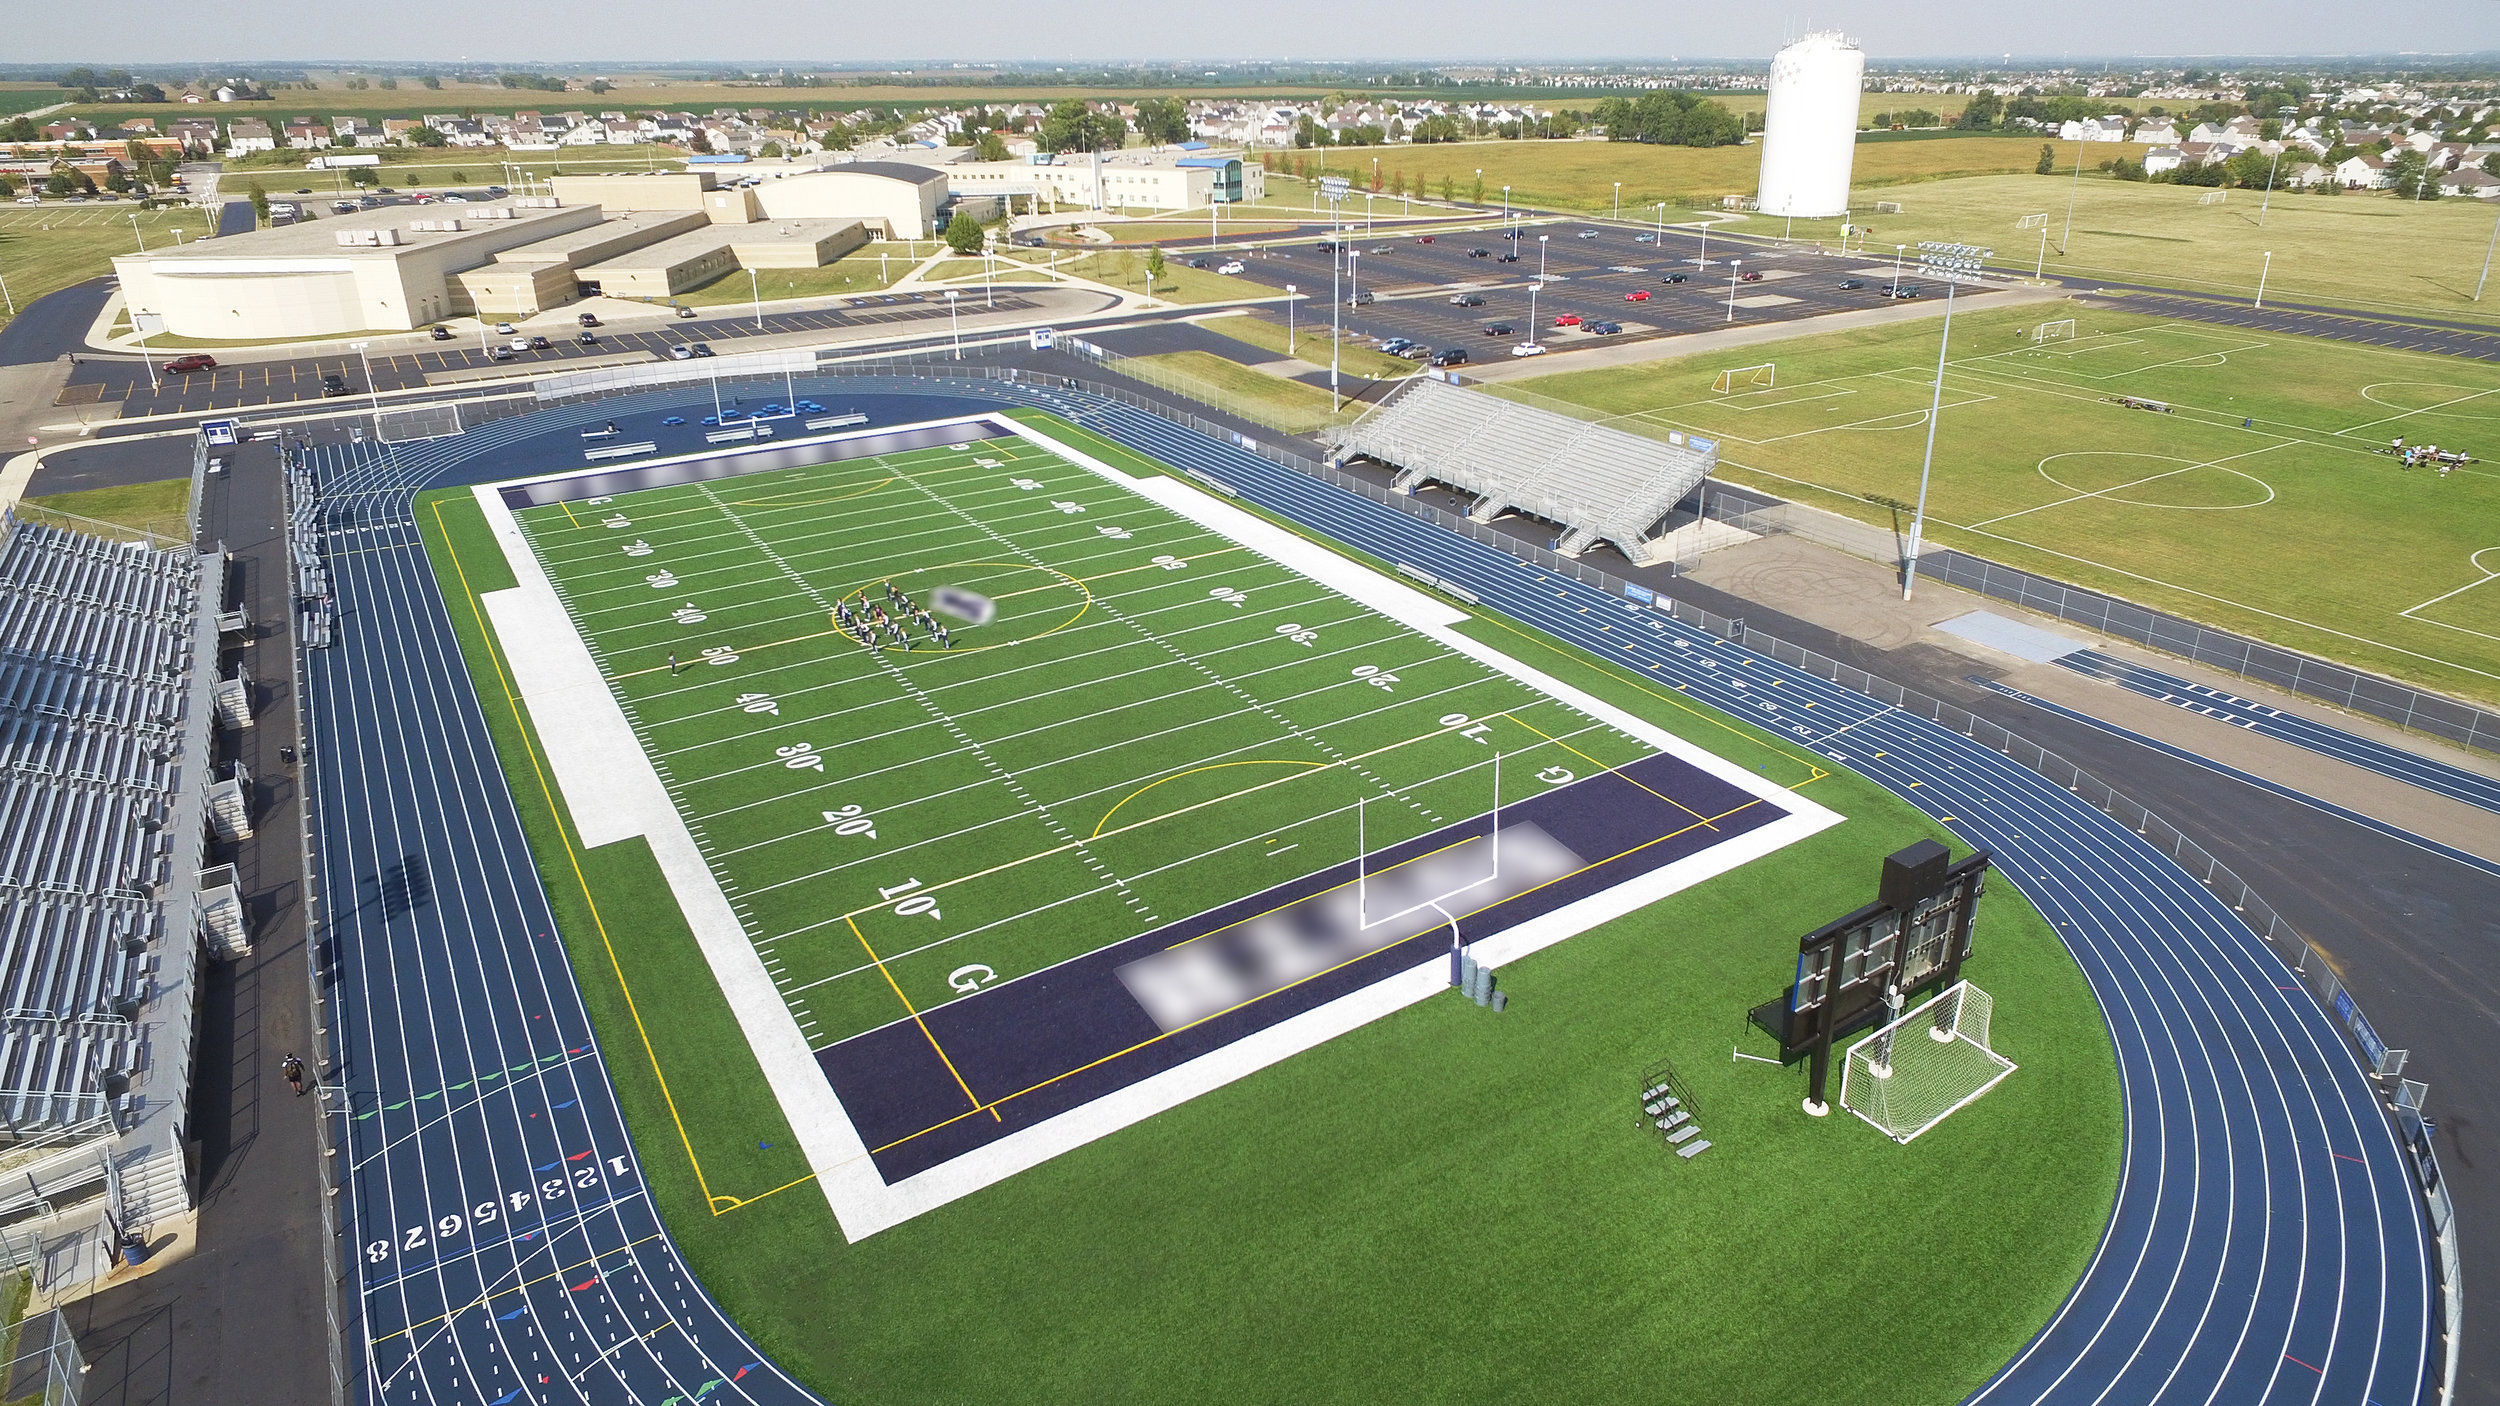 PLAINFIELD SOUTH HIGH SCHOOL - TURF STADIUM